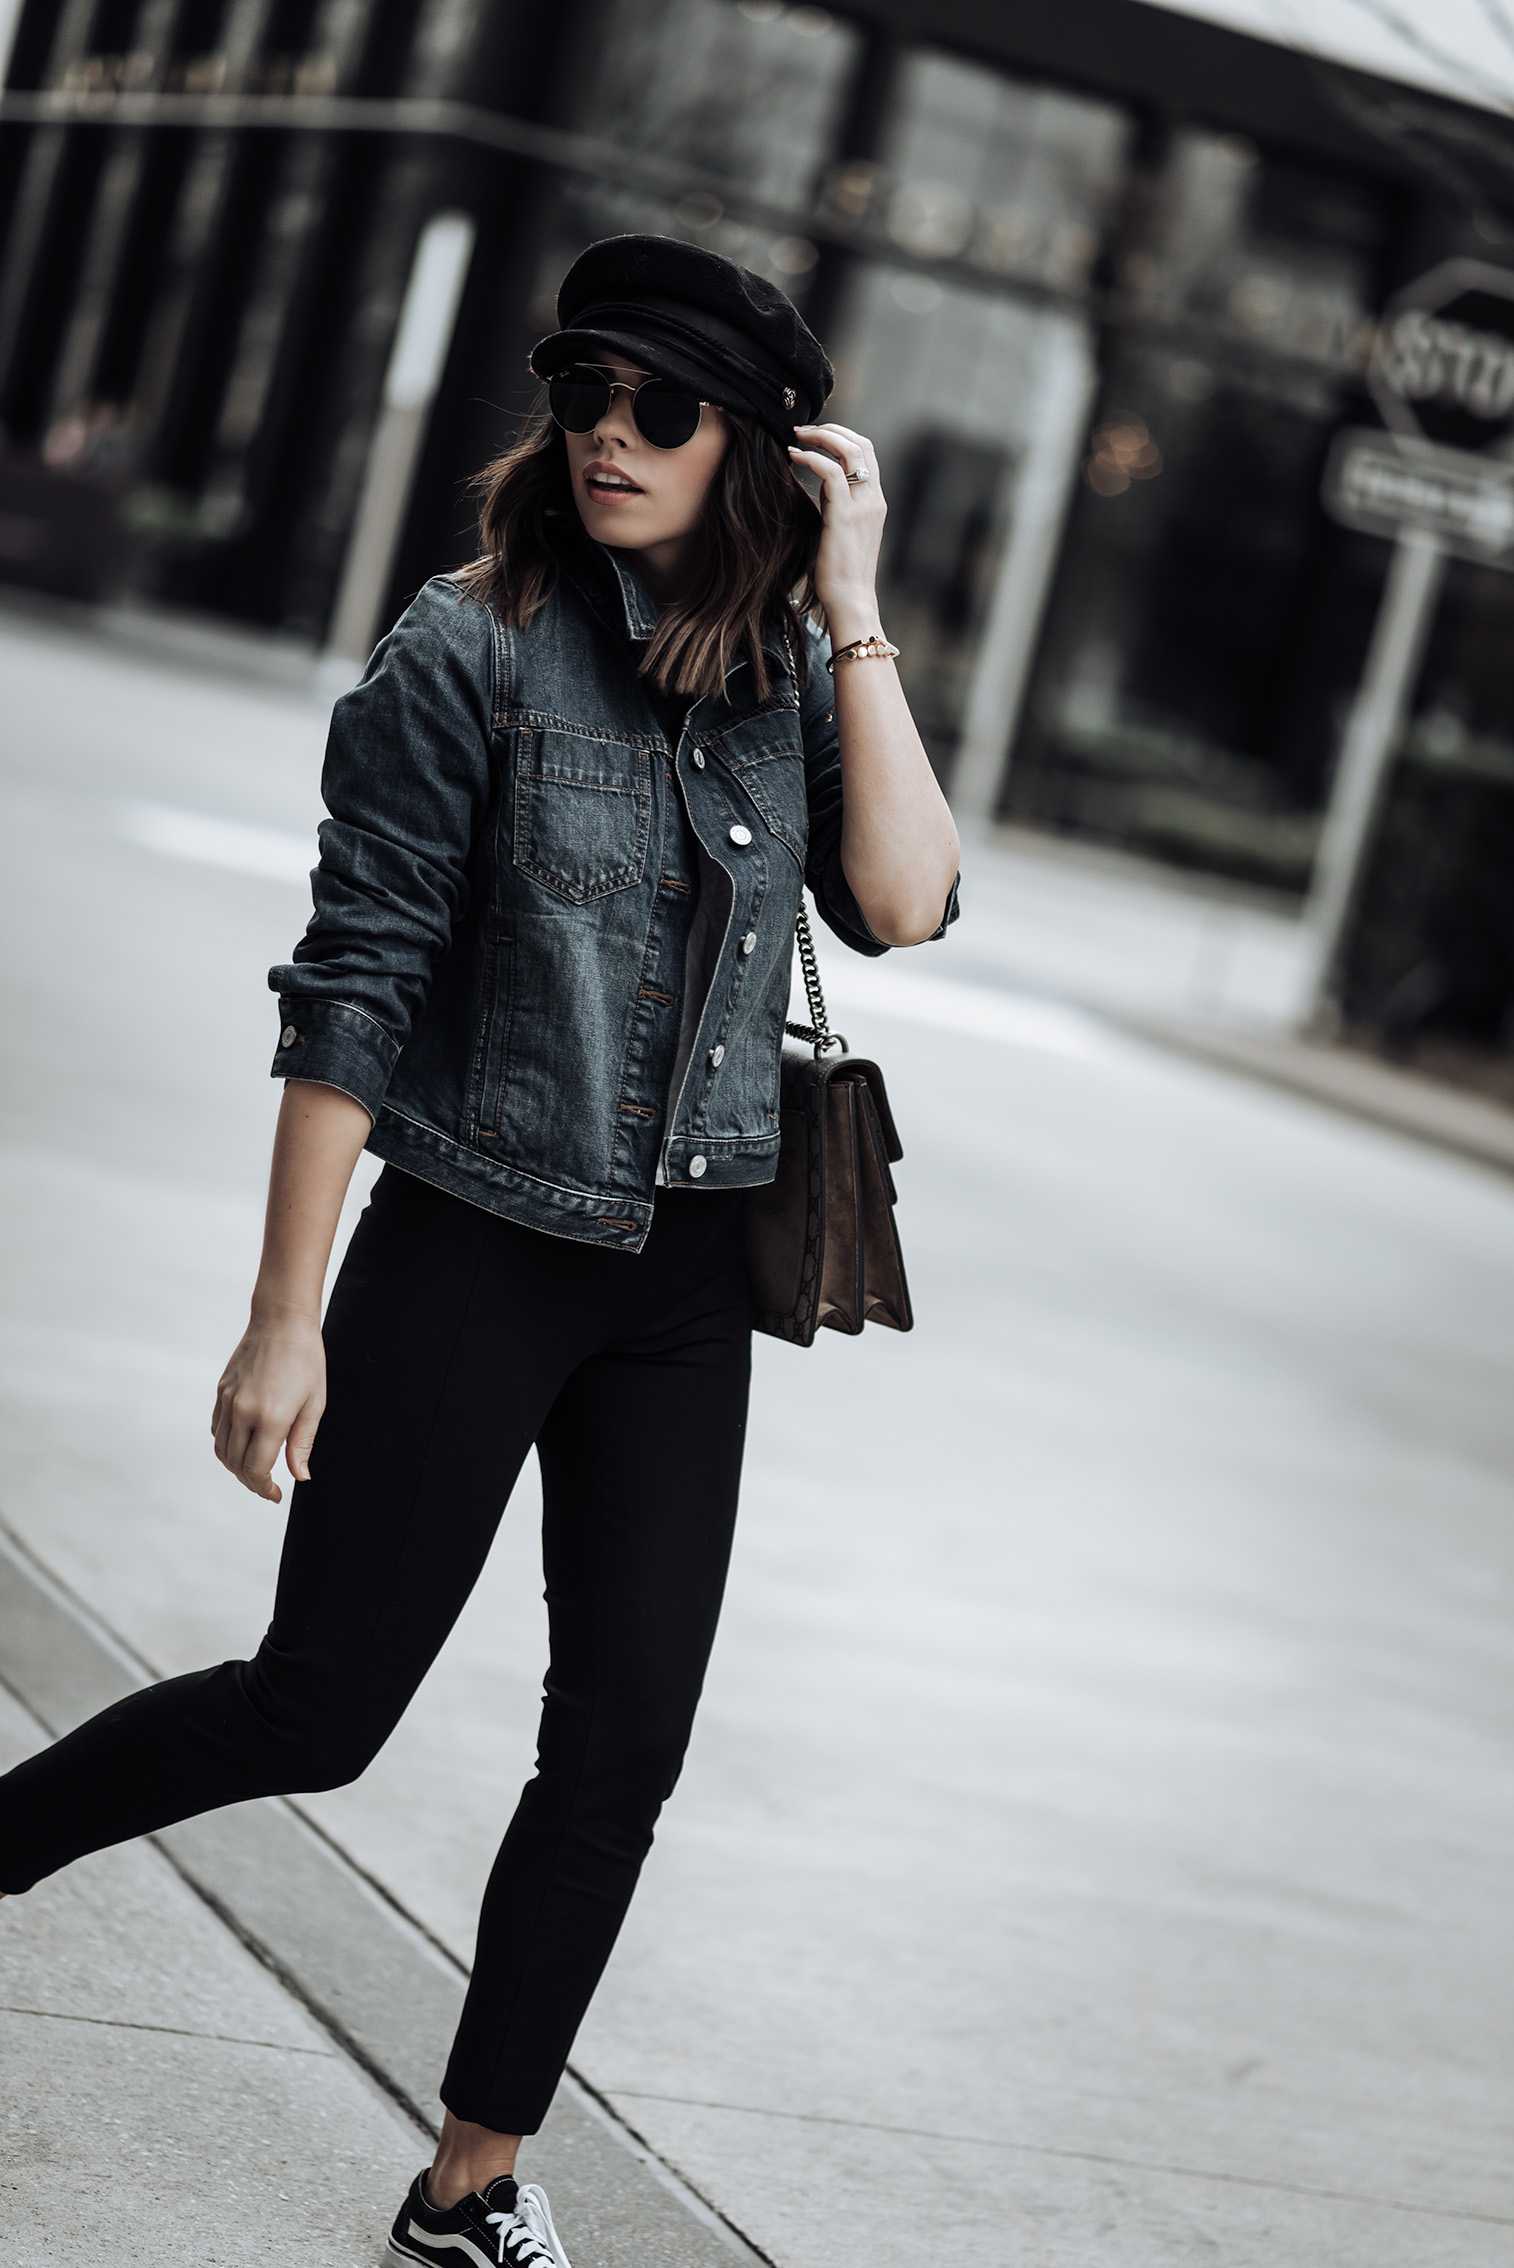 Banana Republic closet essentials | First look: Classic Denim Jacket |Devon High Rise Legging | Second look: Trench Coat |Devon High Rise Legging | Black Point Toe Tie Heels |